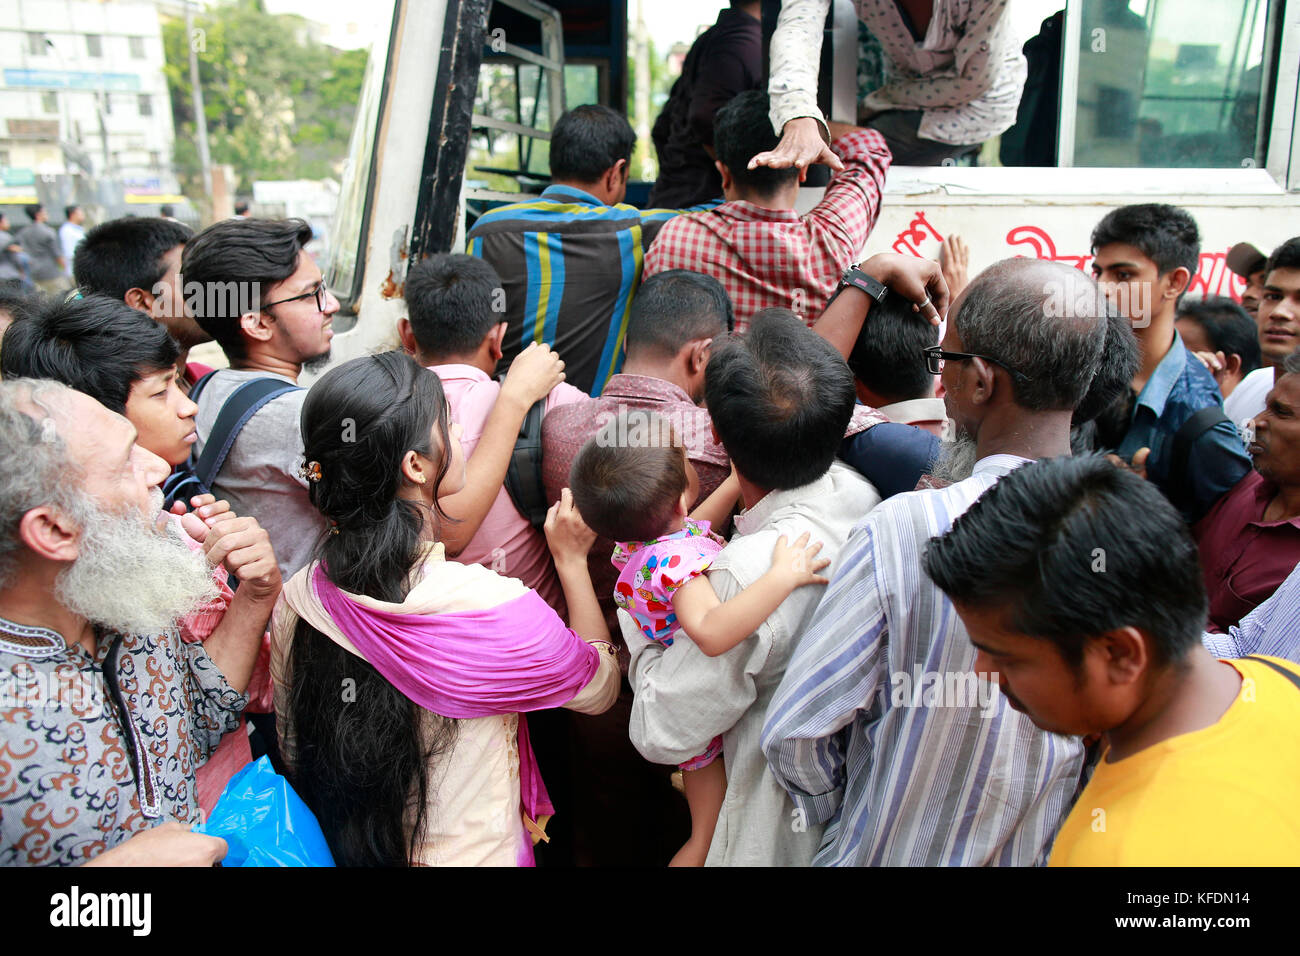 Bangladeshi people try to ride in of an overcrowded bus to travel home, as others wait for transport ahead of Iftar, Stock Photo